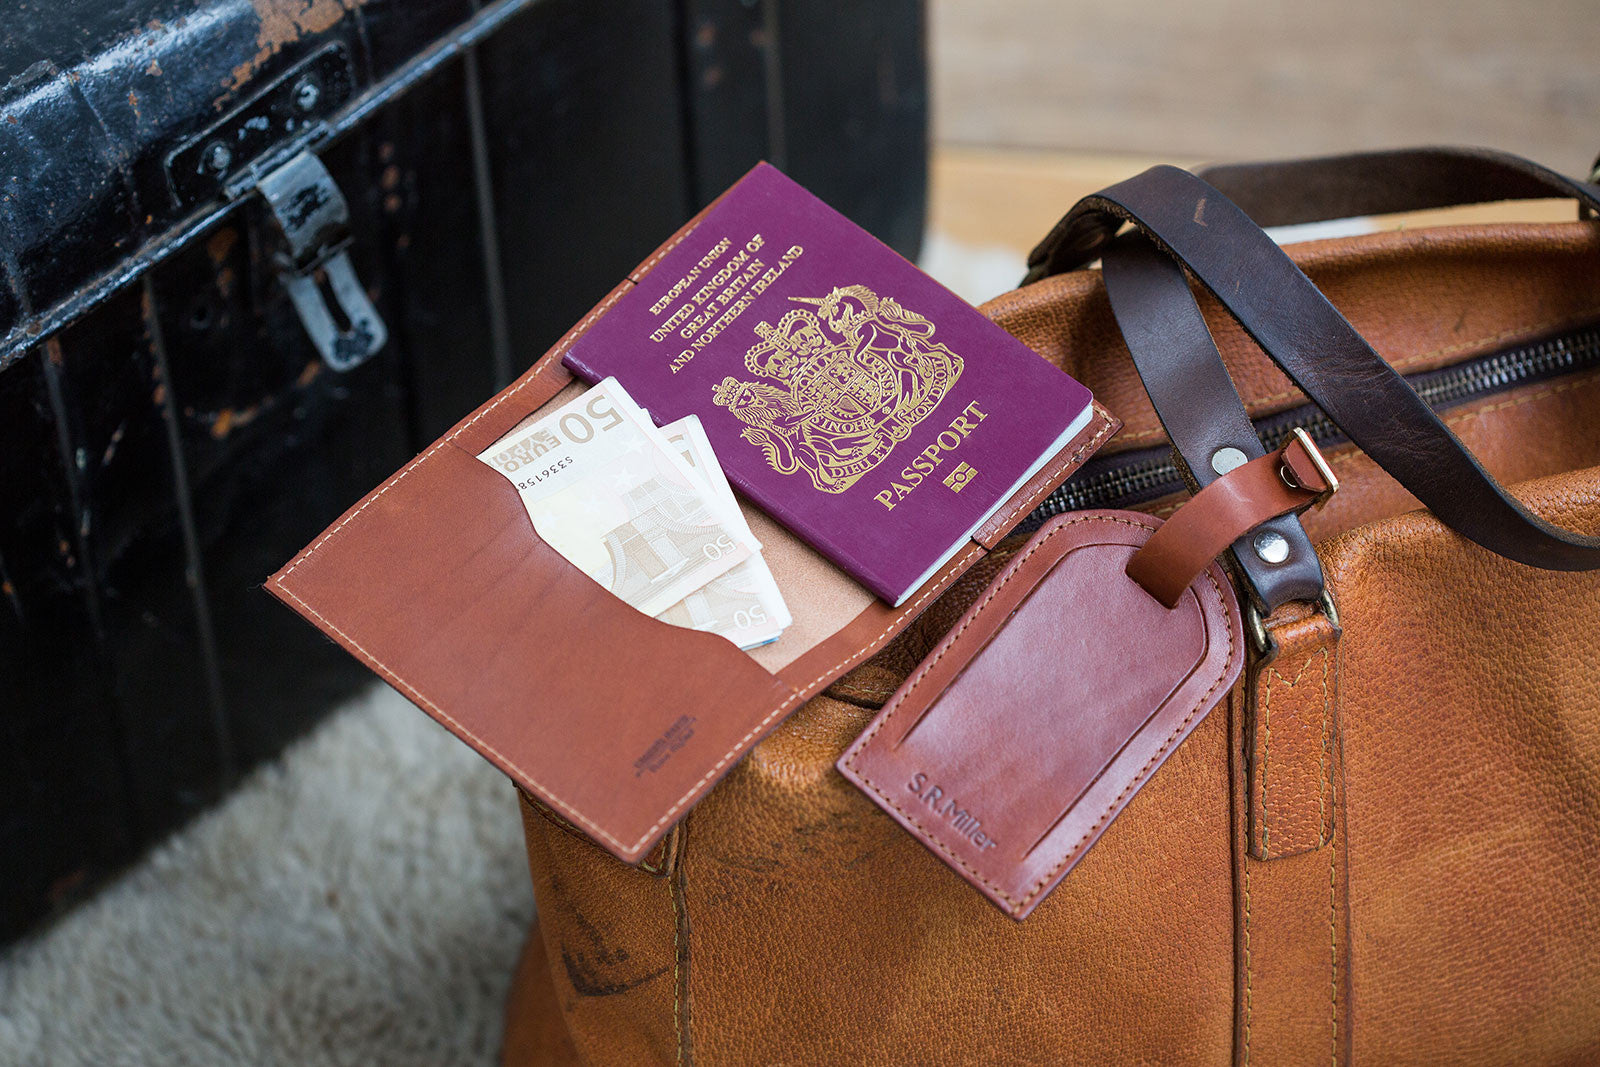 Leather passport cover and luggage label from Tanner Bates